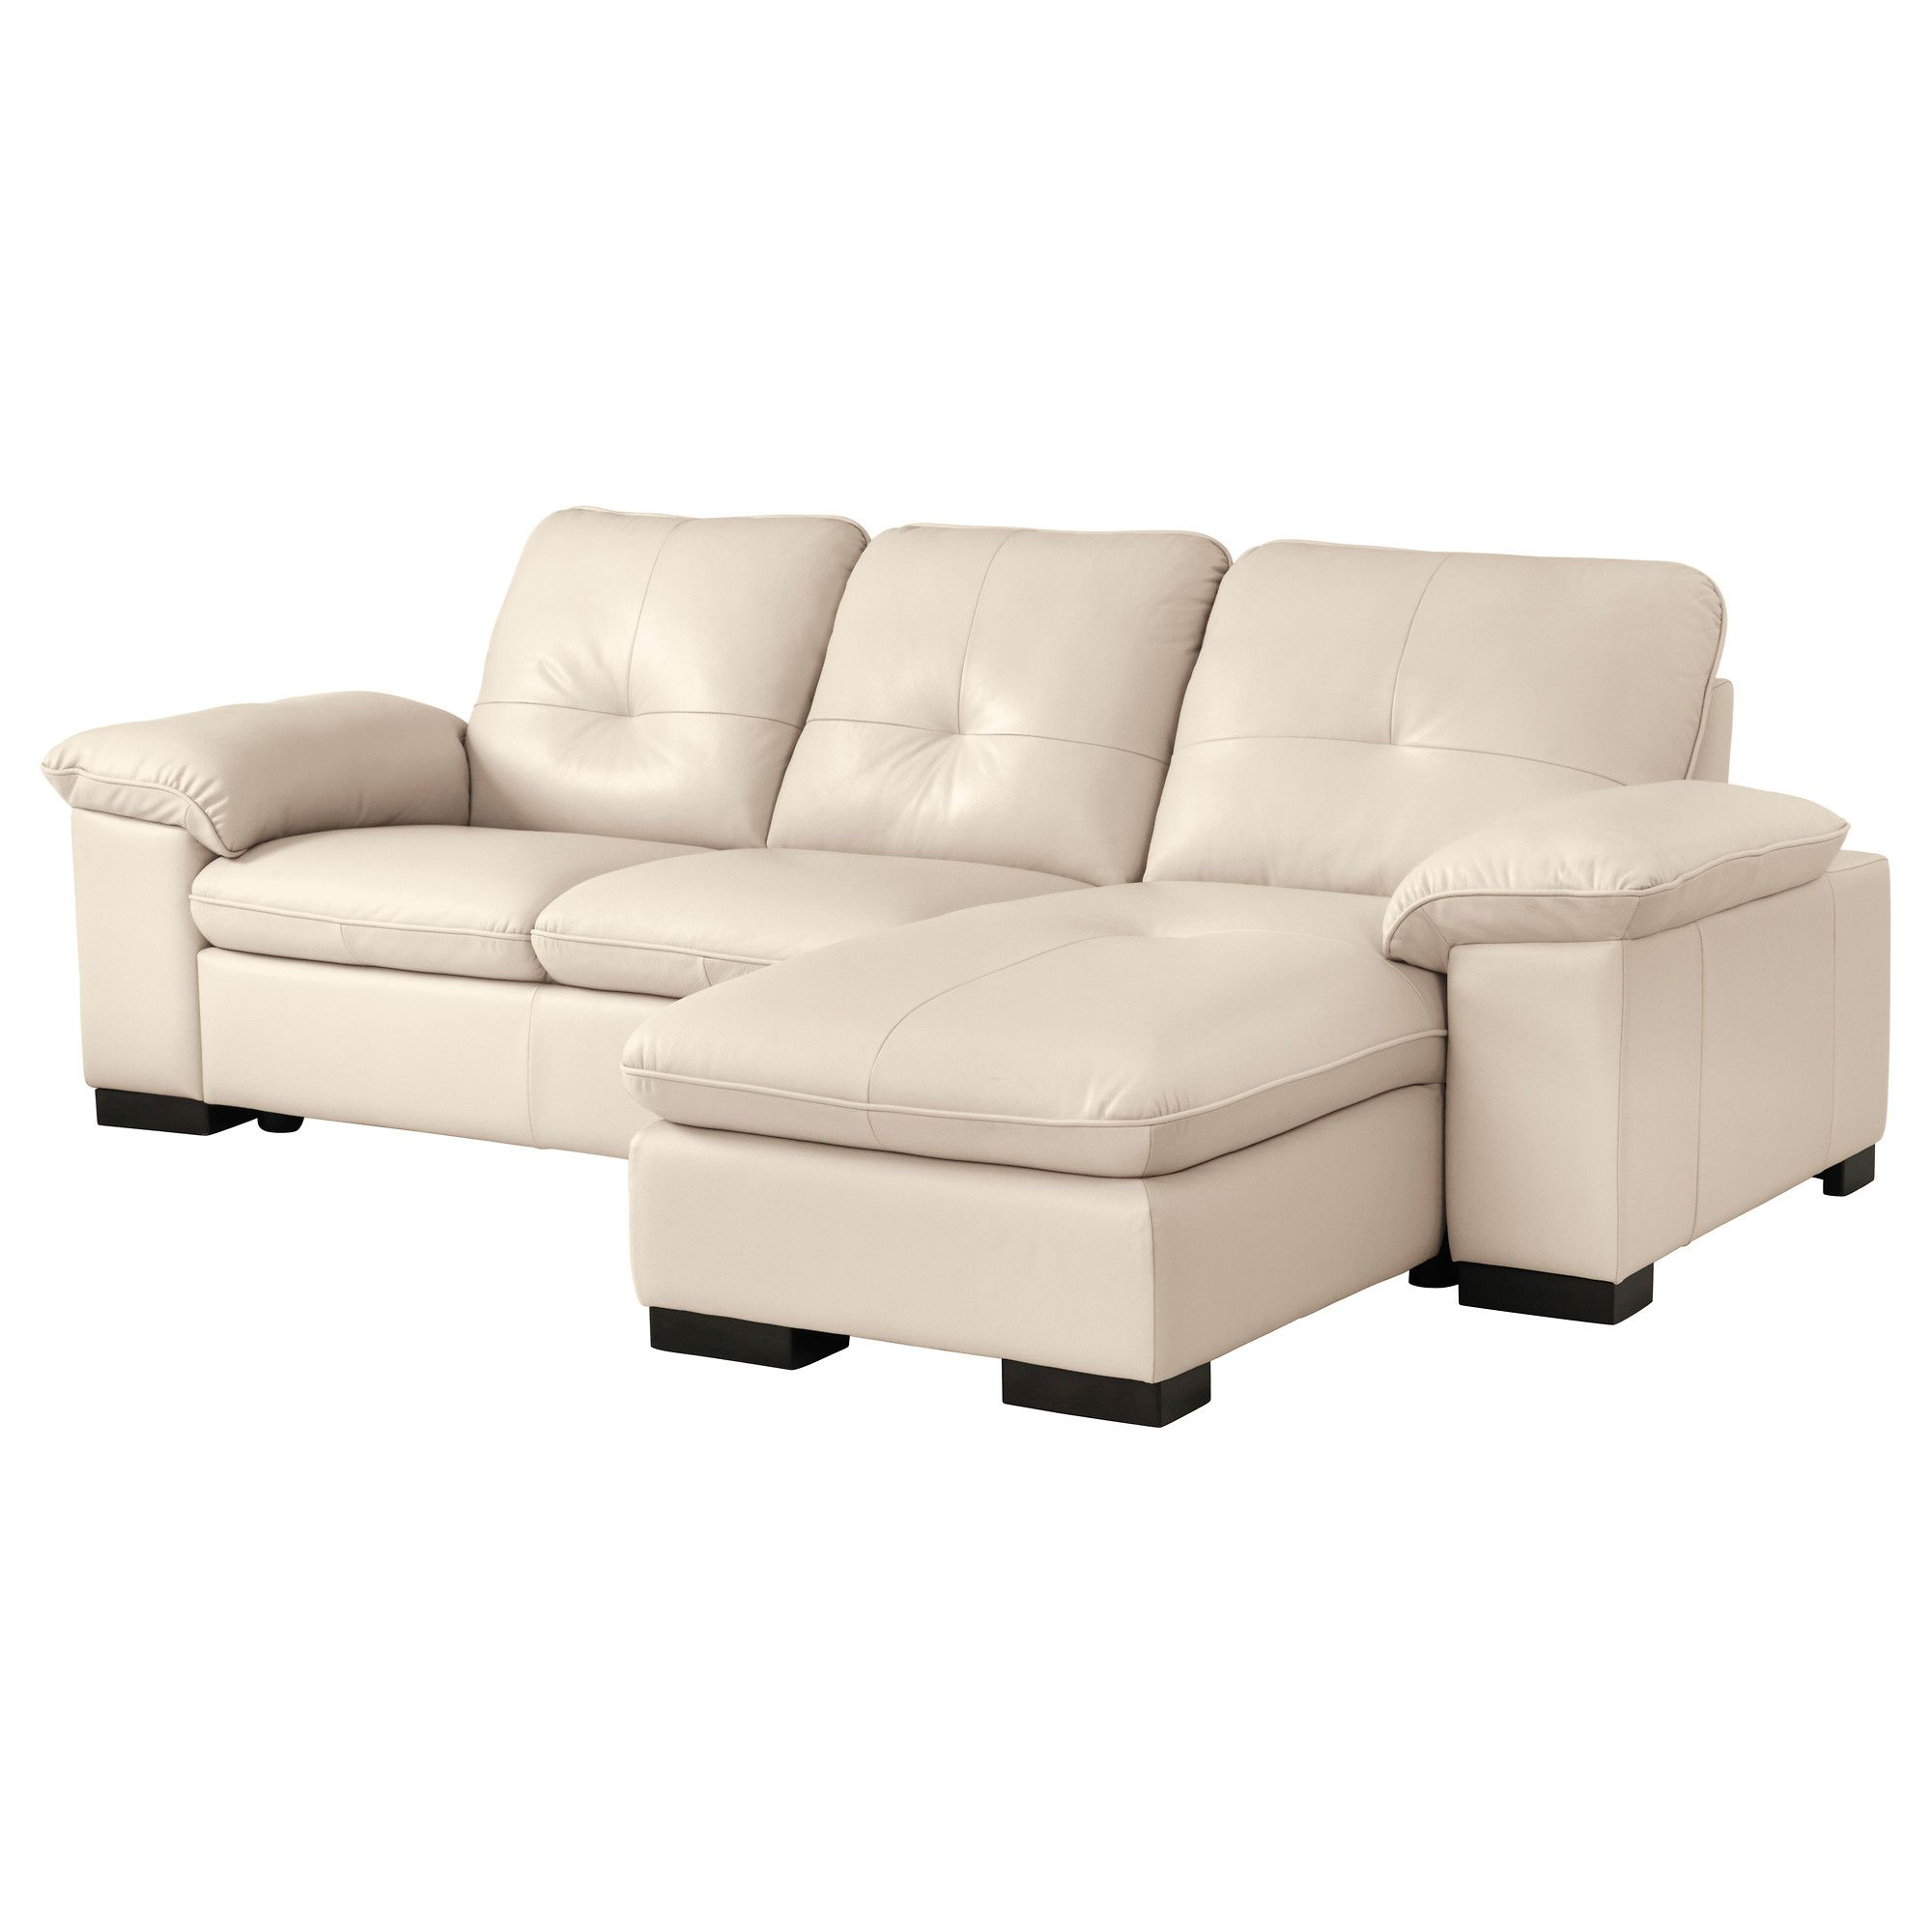 small sleeper leather size queen indoors outdoor set sectional chaise of rooms sofa lounge for full chairs sectionals loveseat attached with